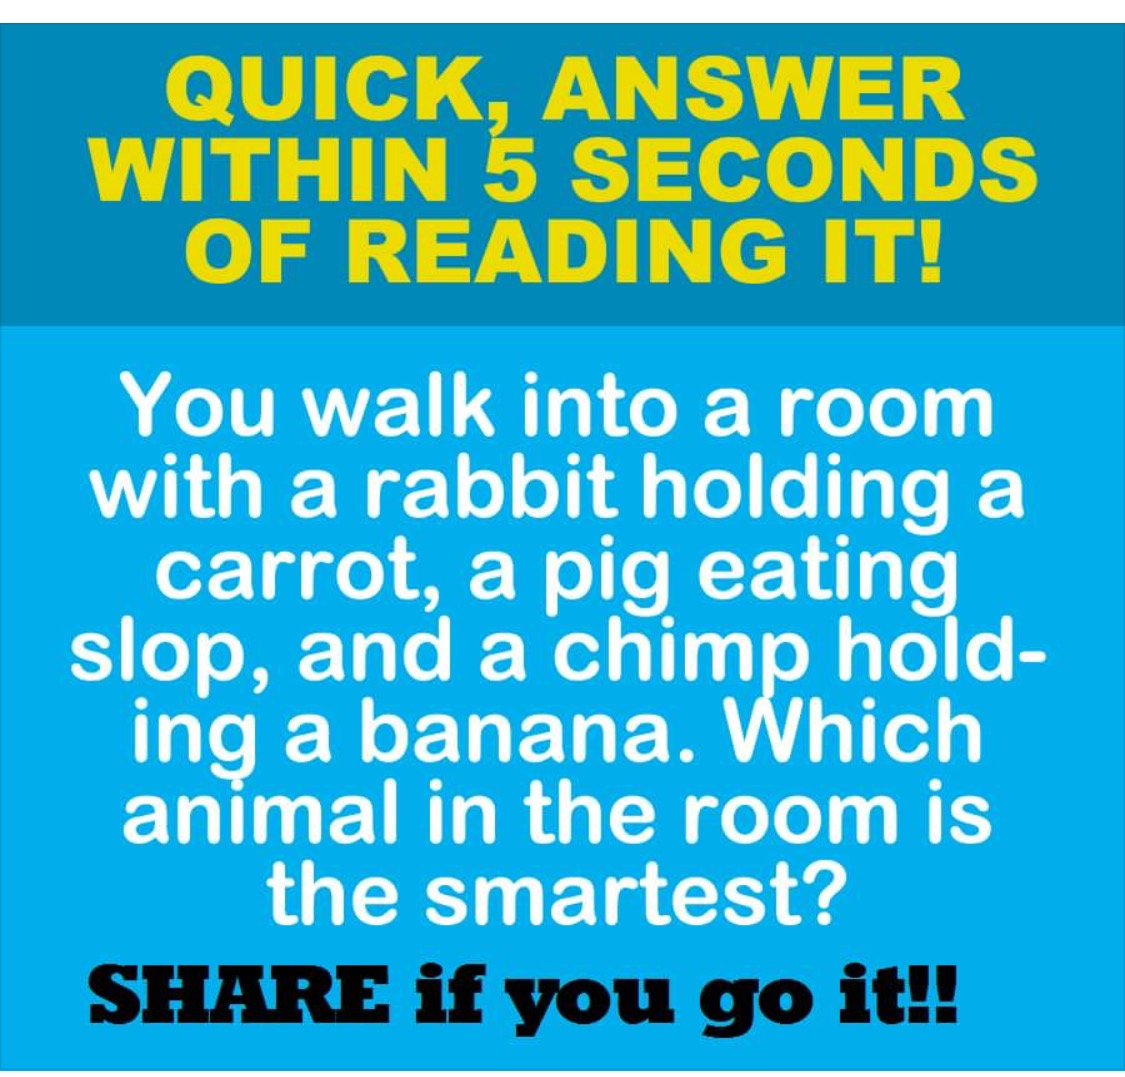 To Prove Your Iq Take The Real Iq Test Online Free